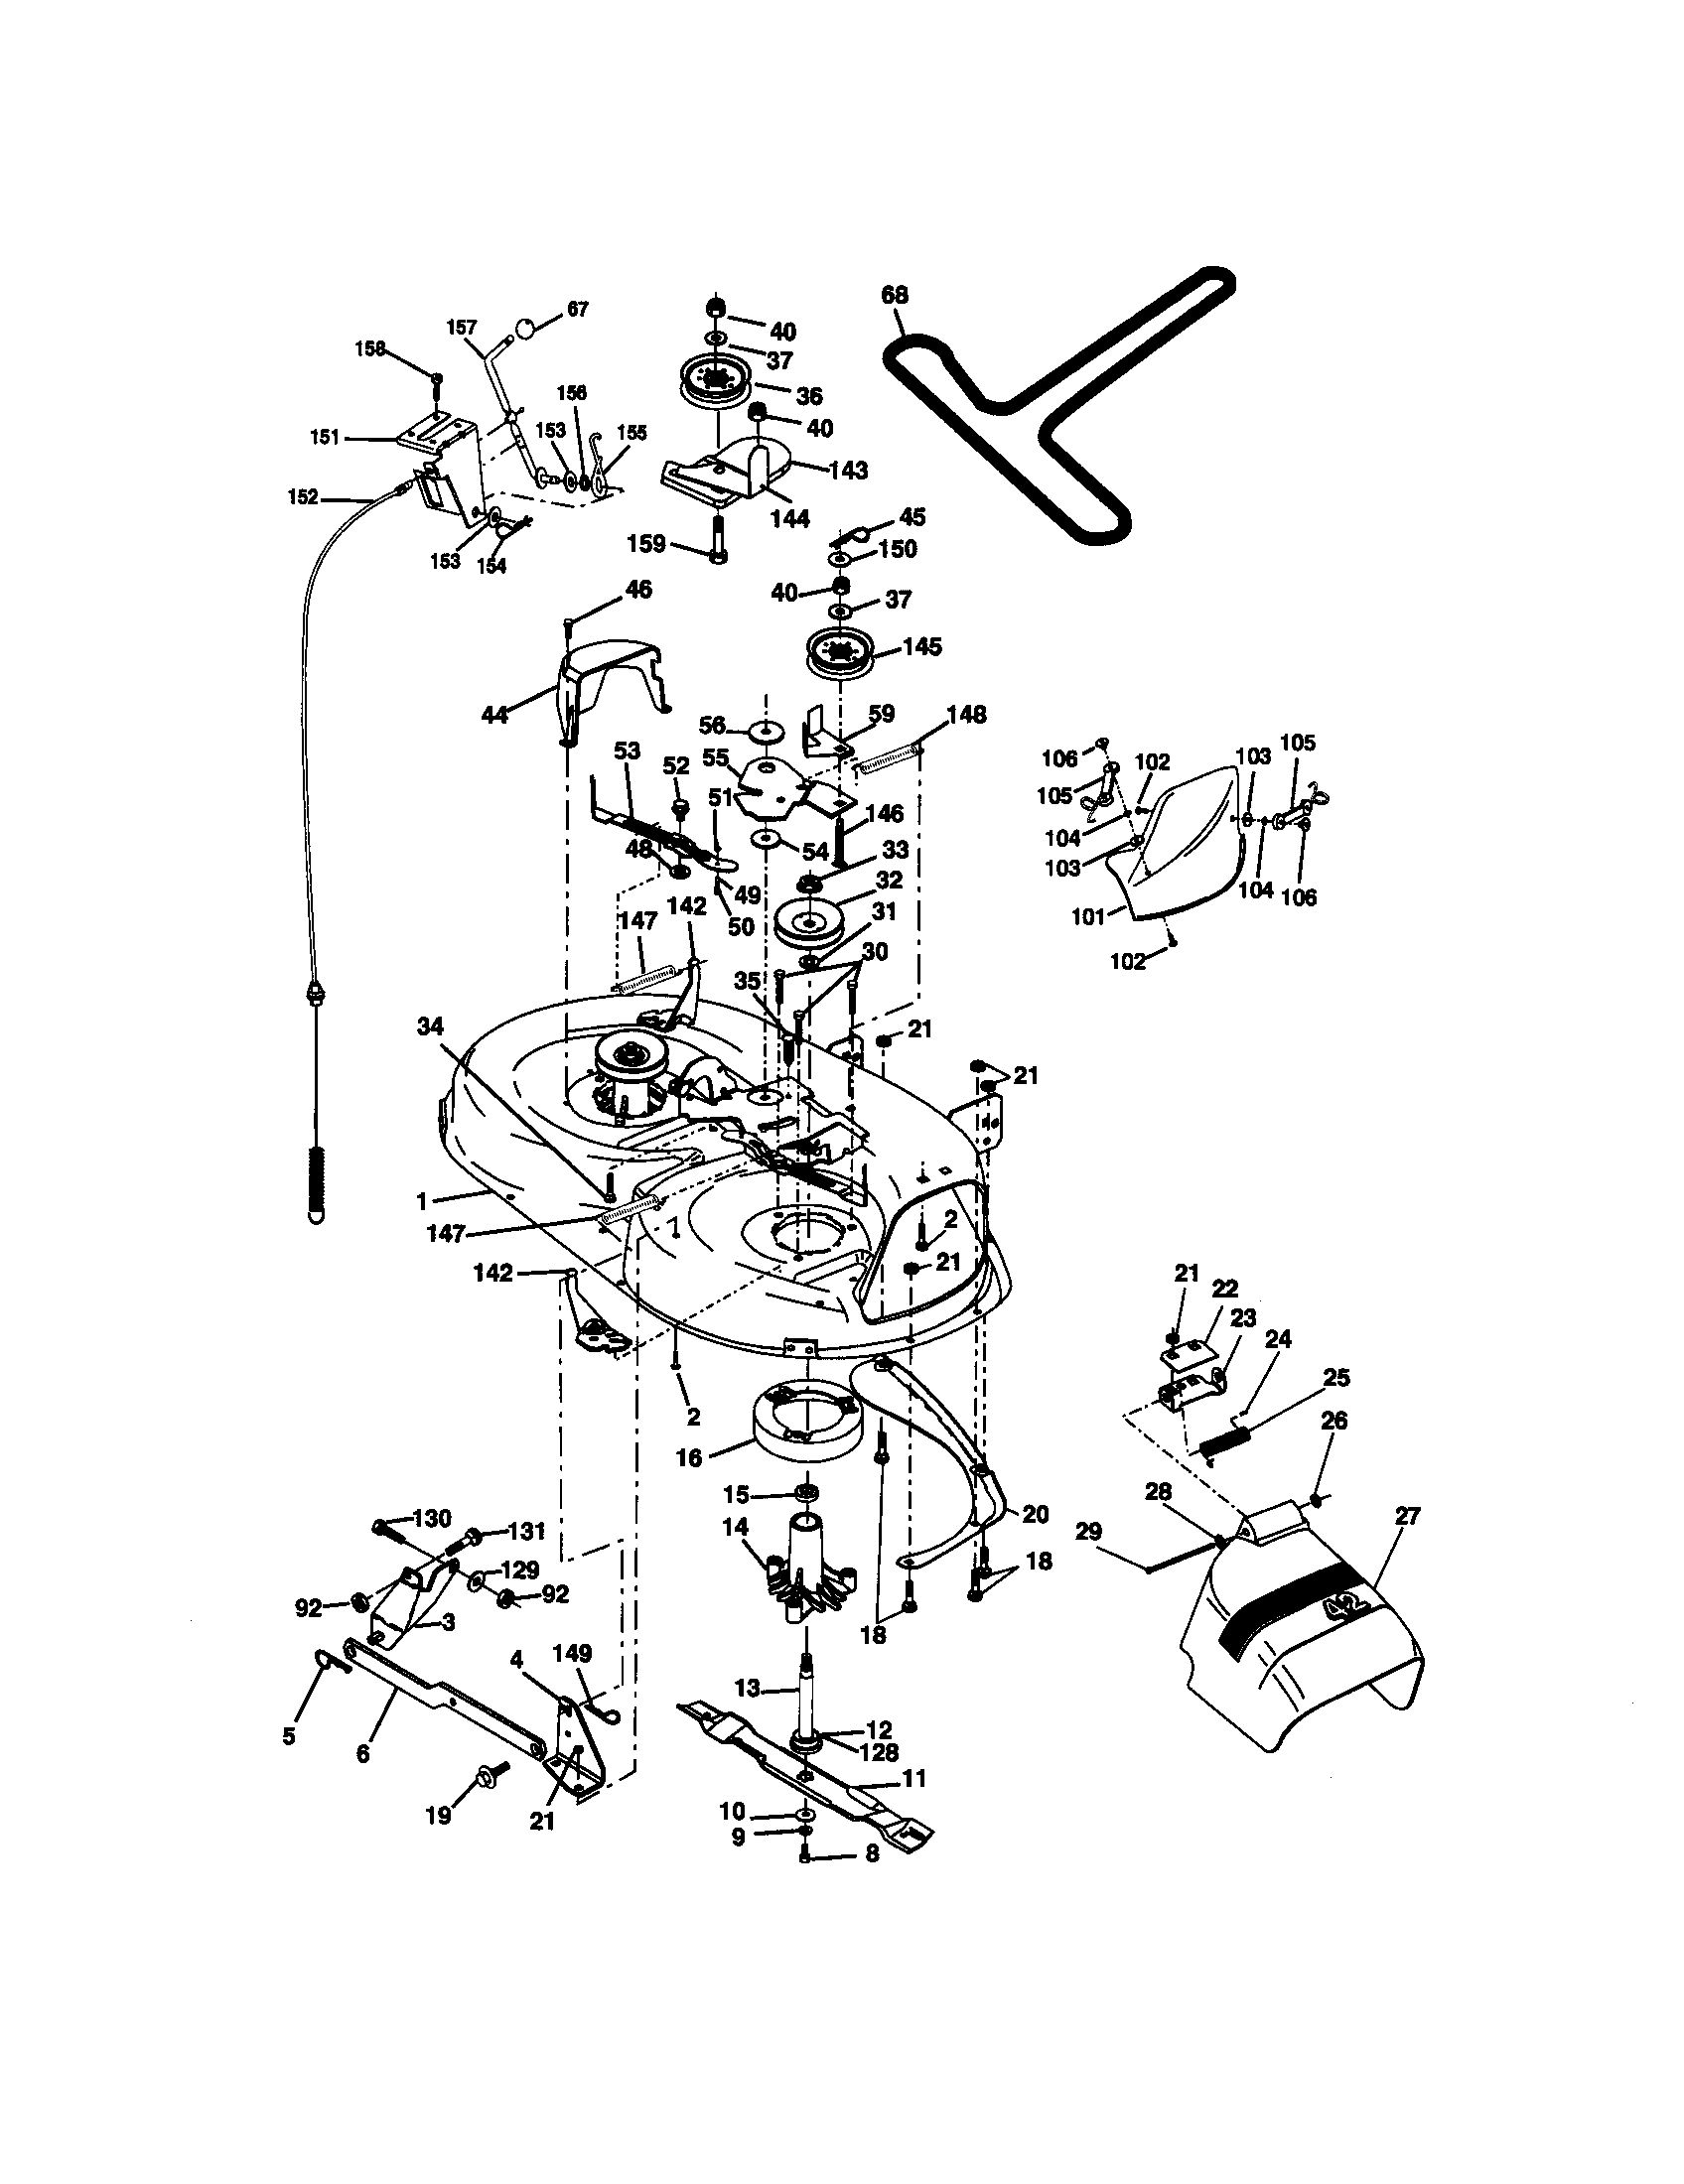 Scott S1642 Lawn Mower Wiring Diagram Free Download